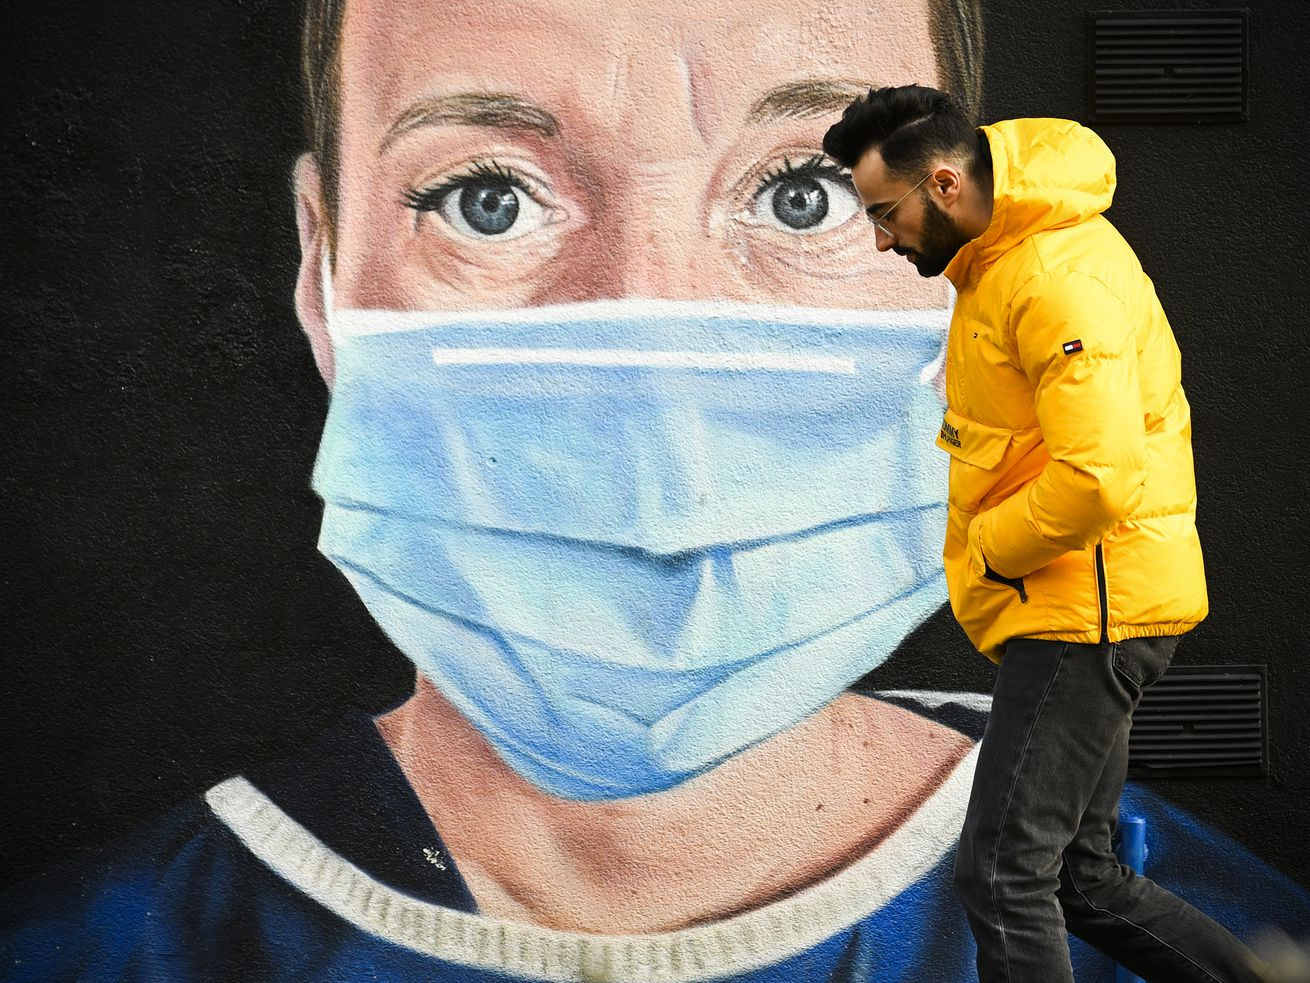 A person walks past a large mural of a face wearing a breathing mask.